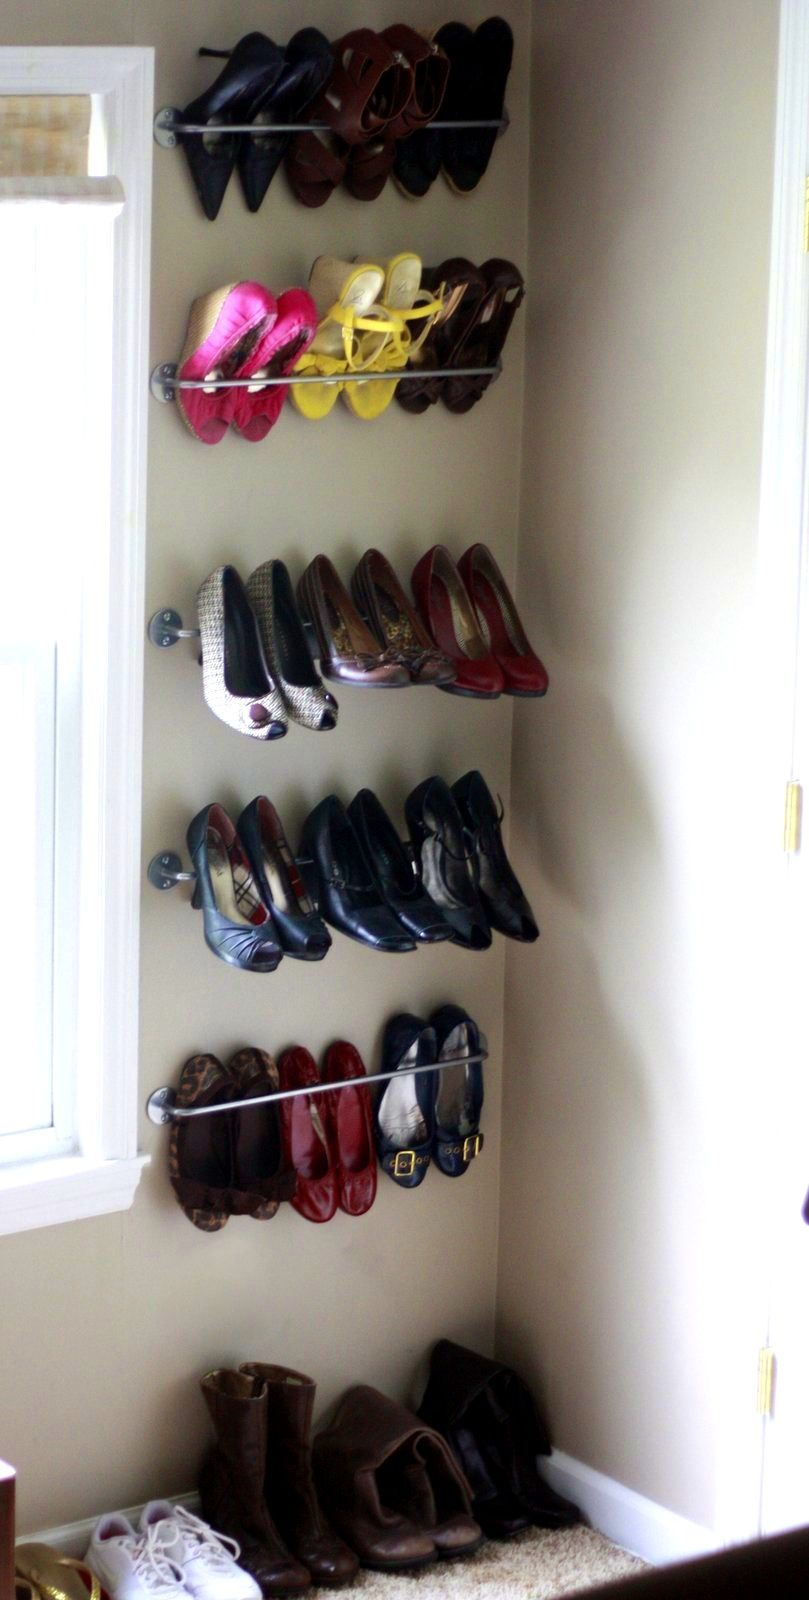 Decor Ikea Shoe Storage, Simple Shoes Rack, Stainless Hanging Shelves.  Great Ikea Shoe Storage Ideas